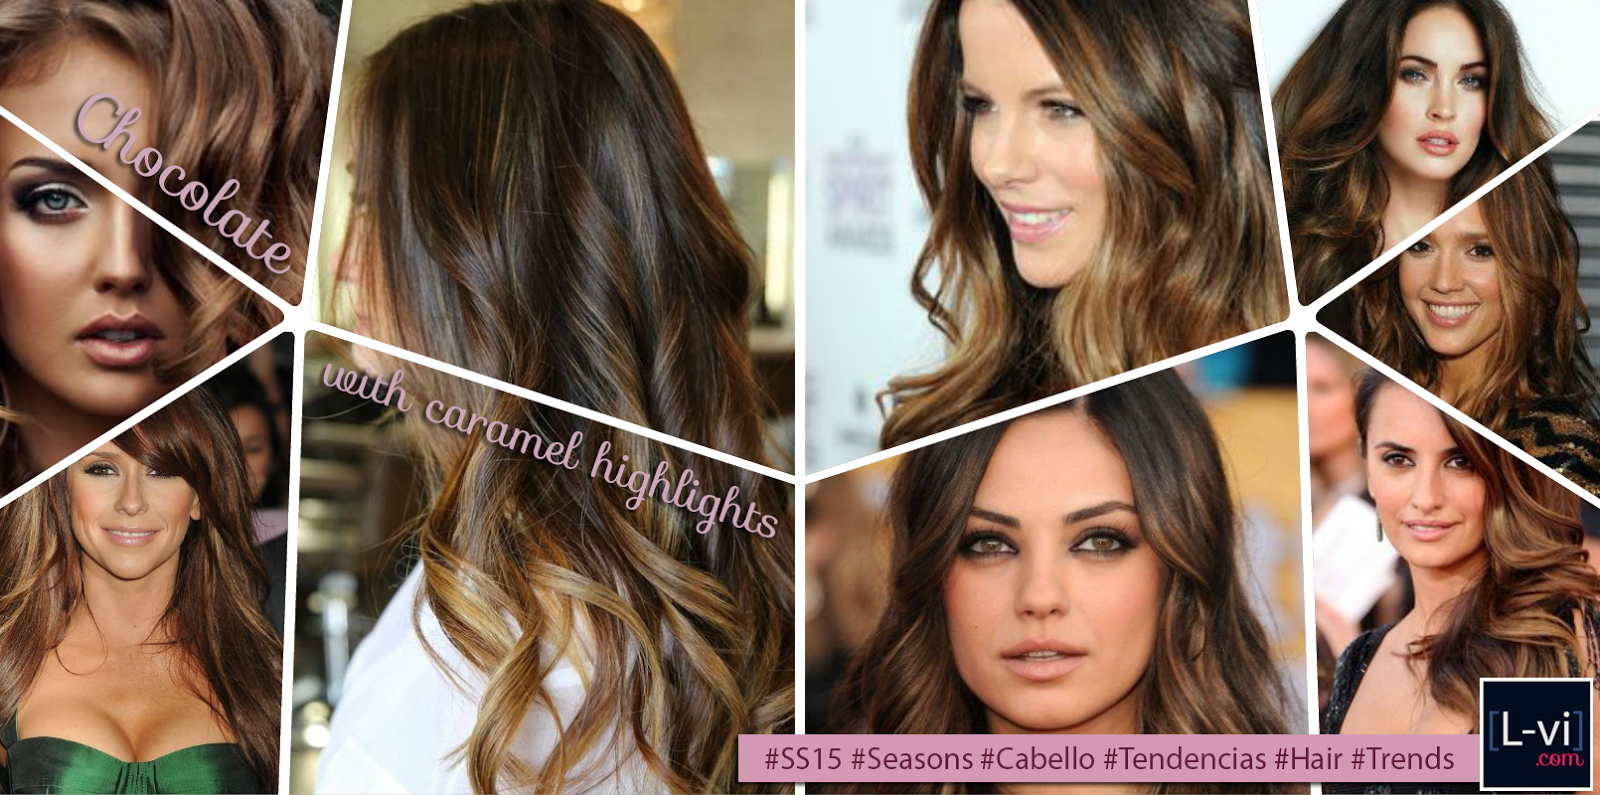 [SS15] Hair Trends: Chocolate with caramel highlights  L-vi.com